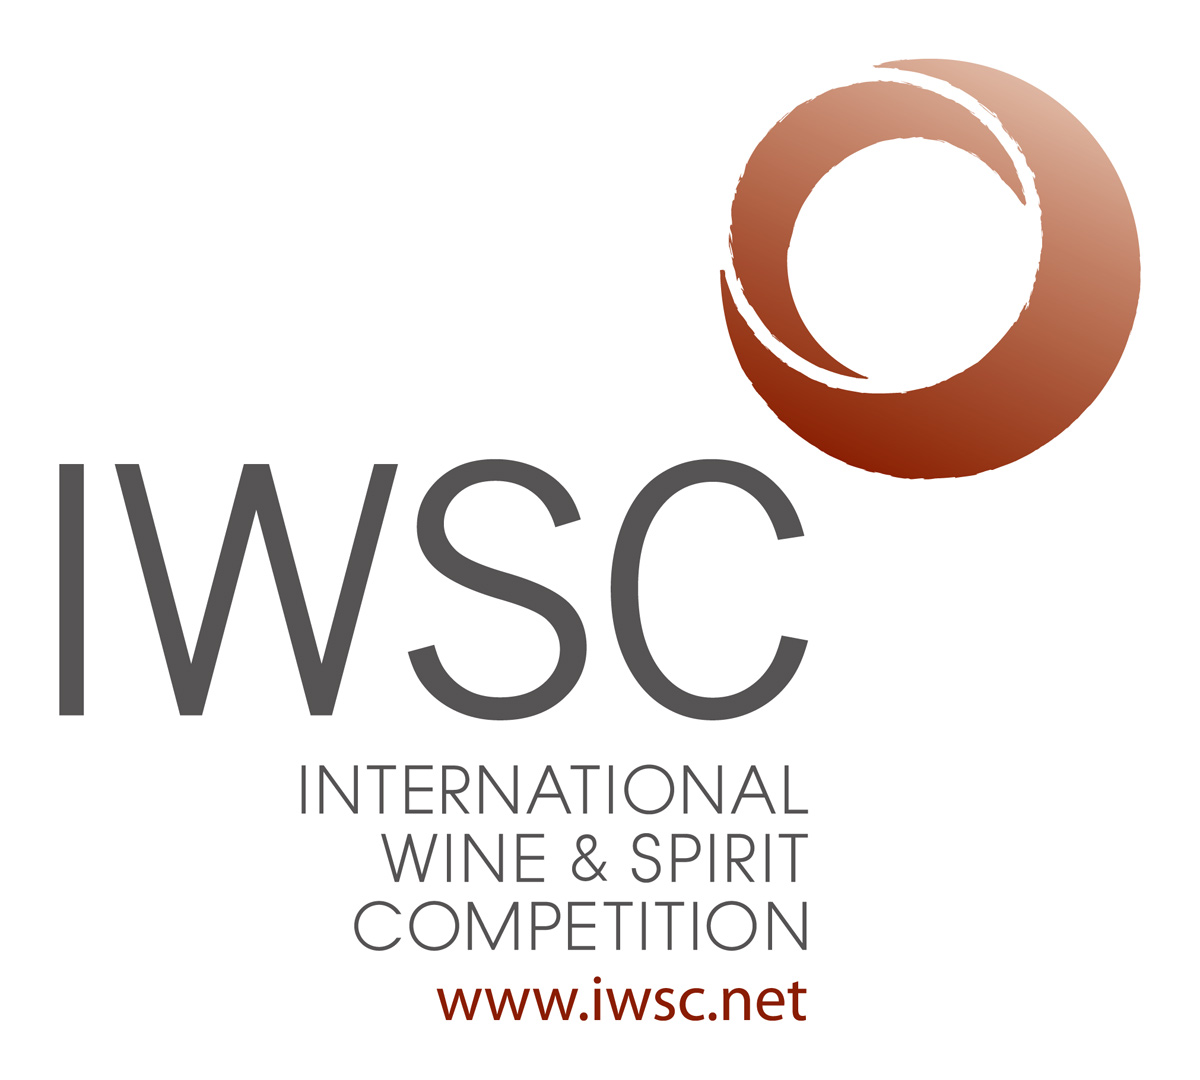 Фото: логотип конкурса IWSC (International Wine and Spirits Competition)